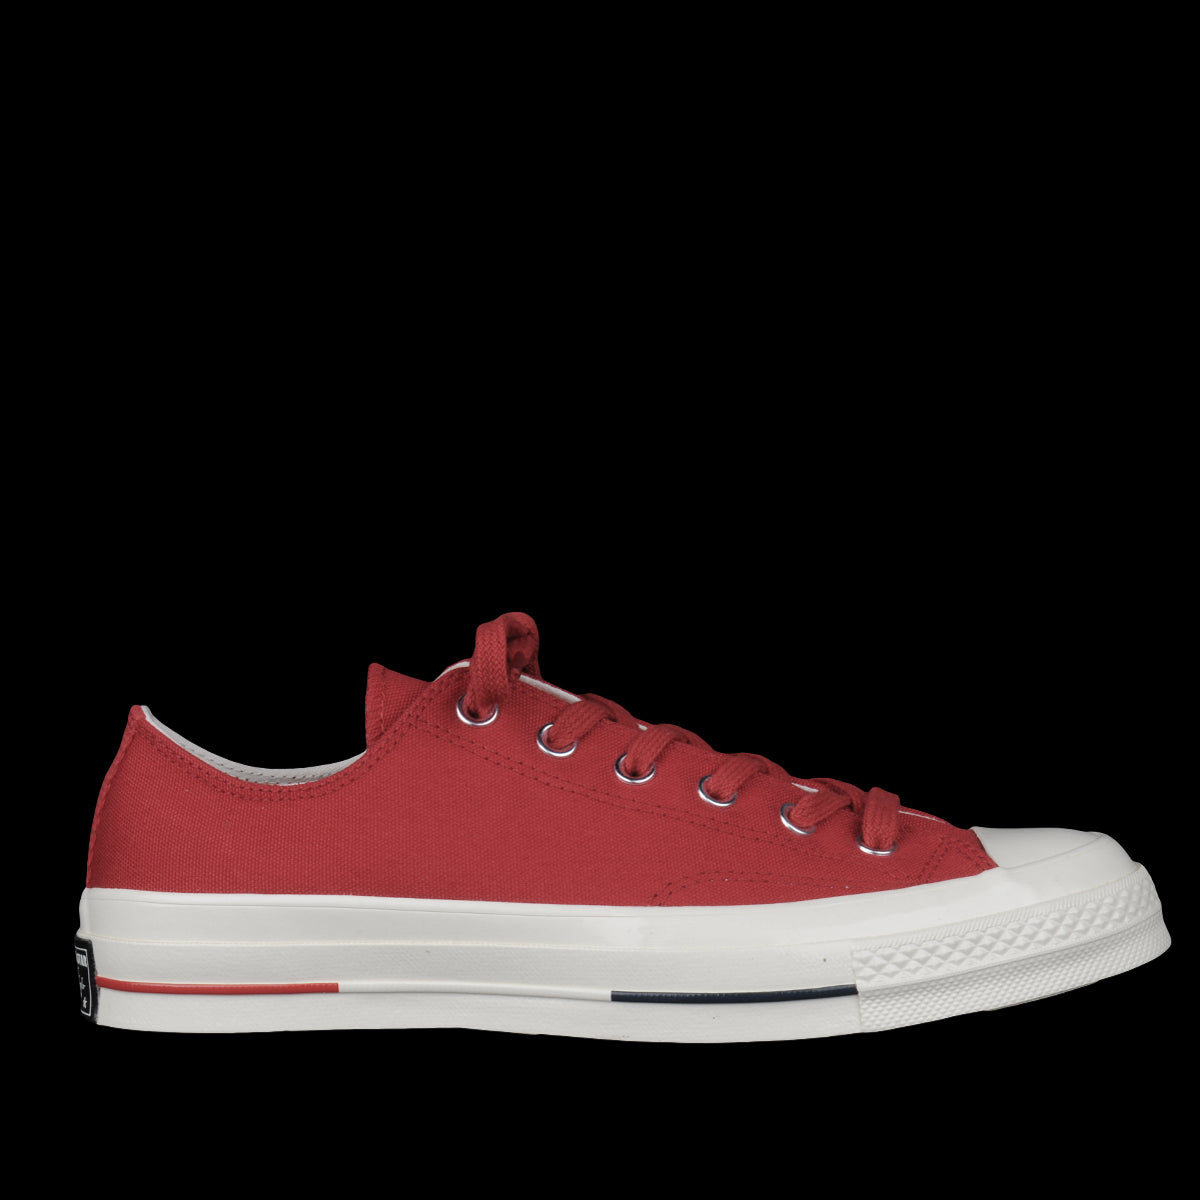 1590dcd32cfa Converse - Chuck Taylor All Star 70 Ox in Gym Red - UNIONMADE